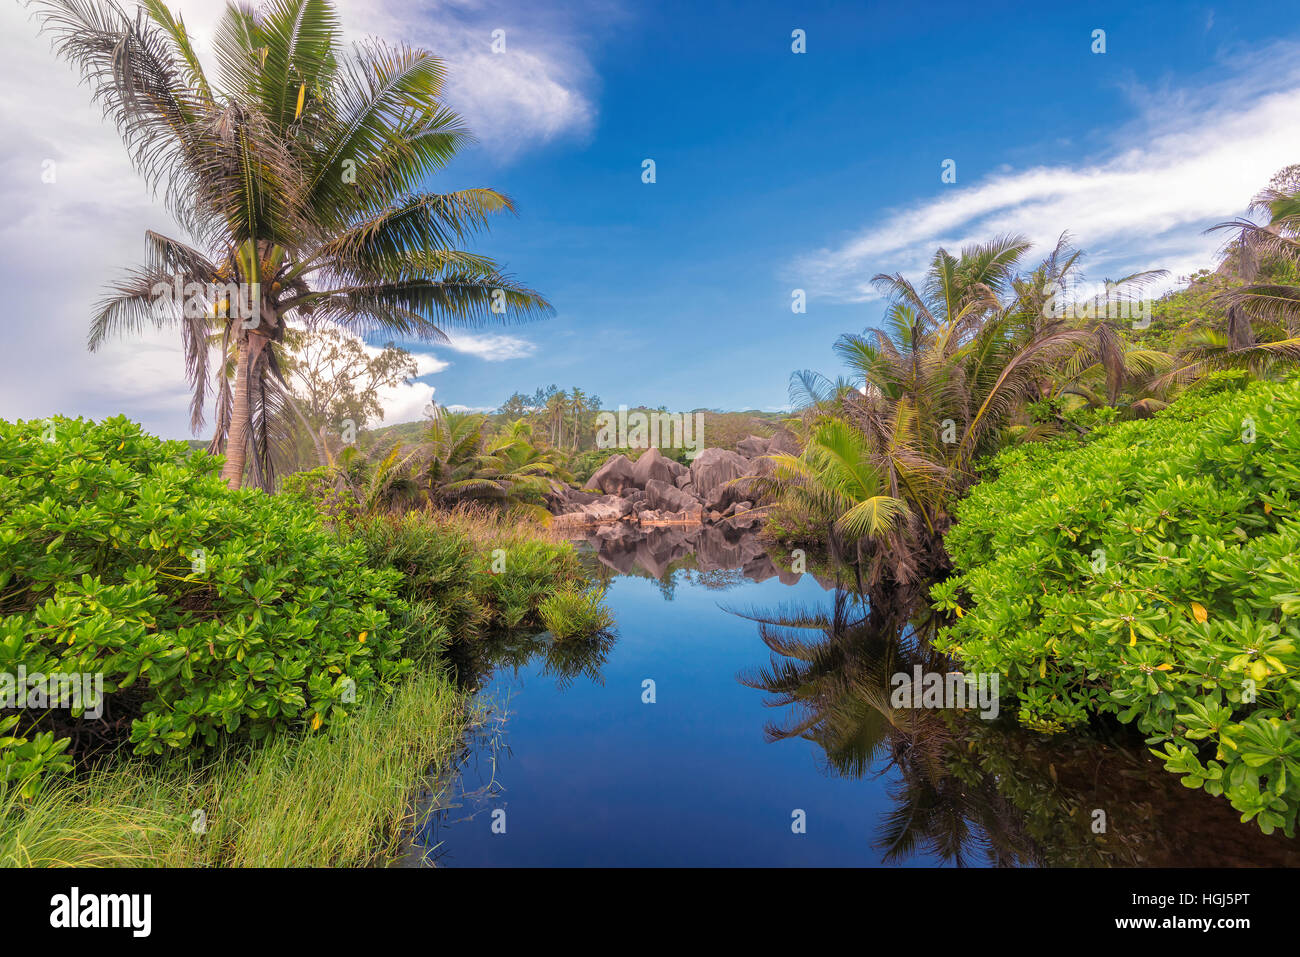 African Tropical Lake In Jungle La Digue Island In